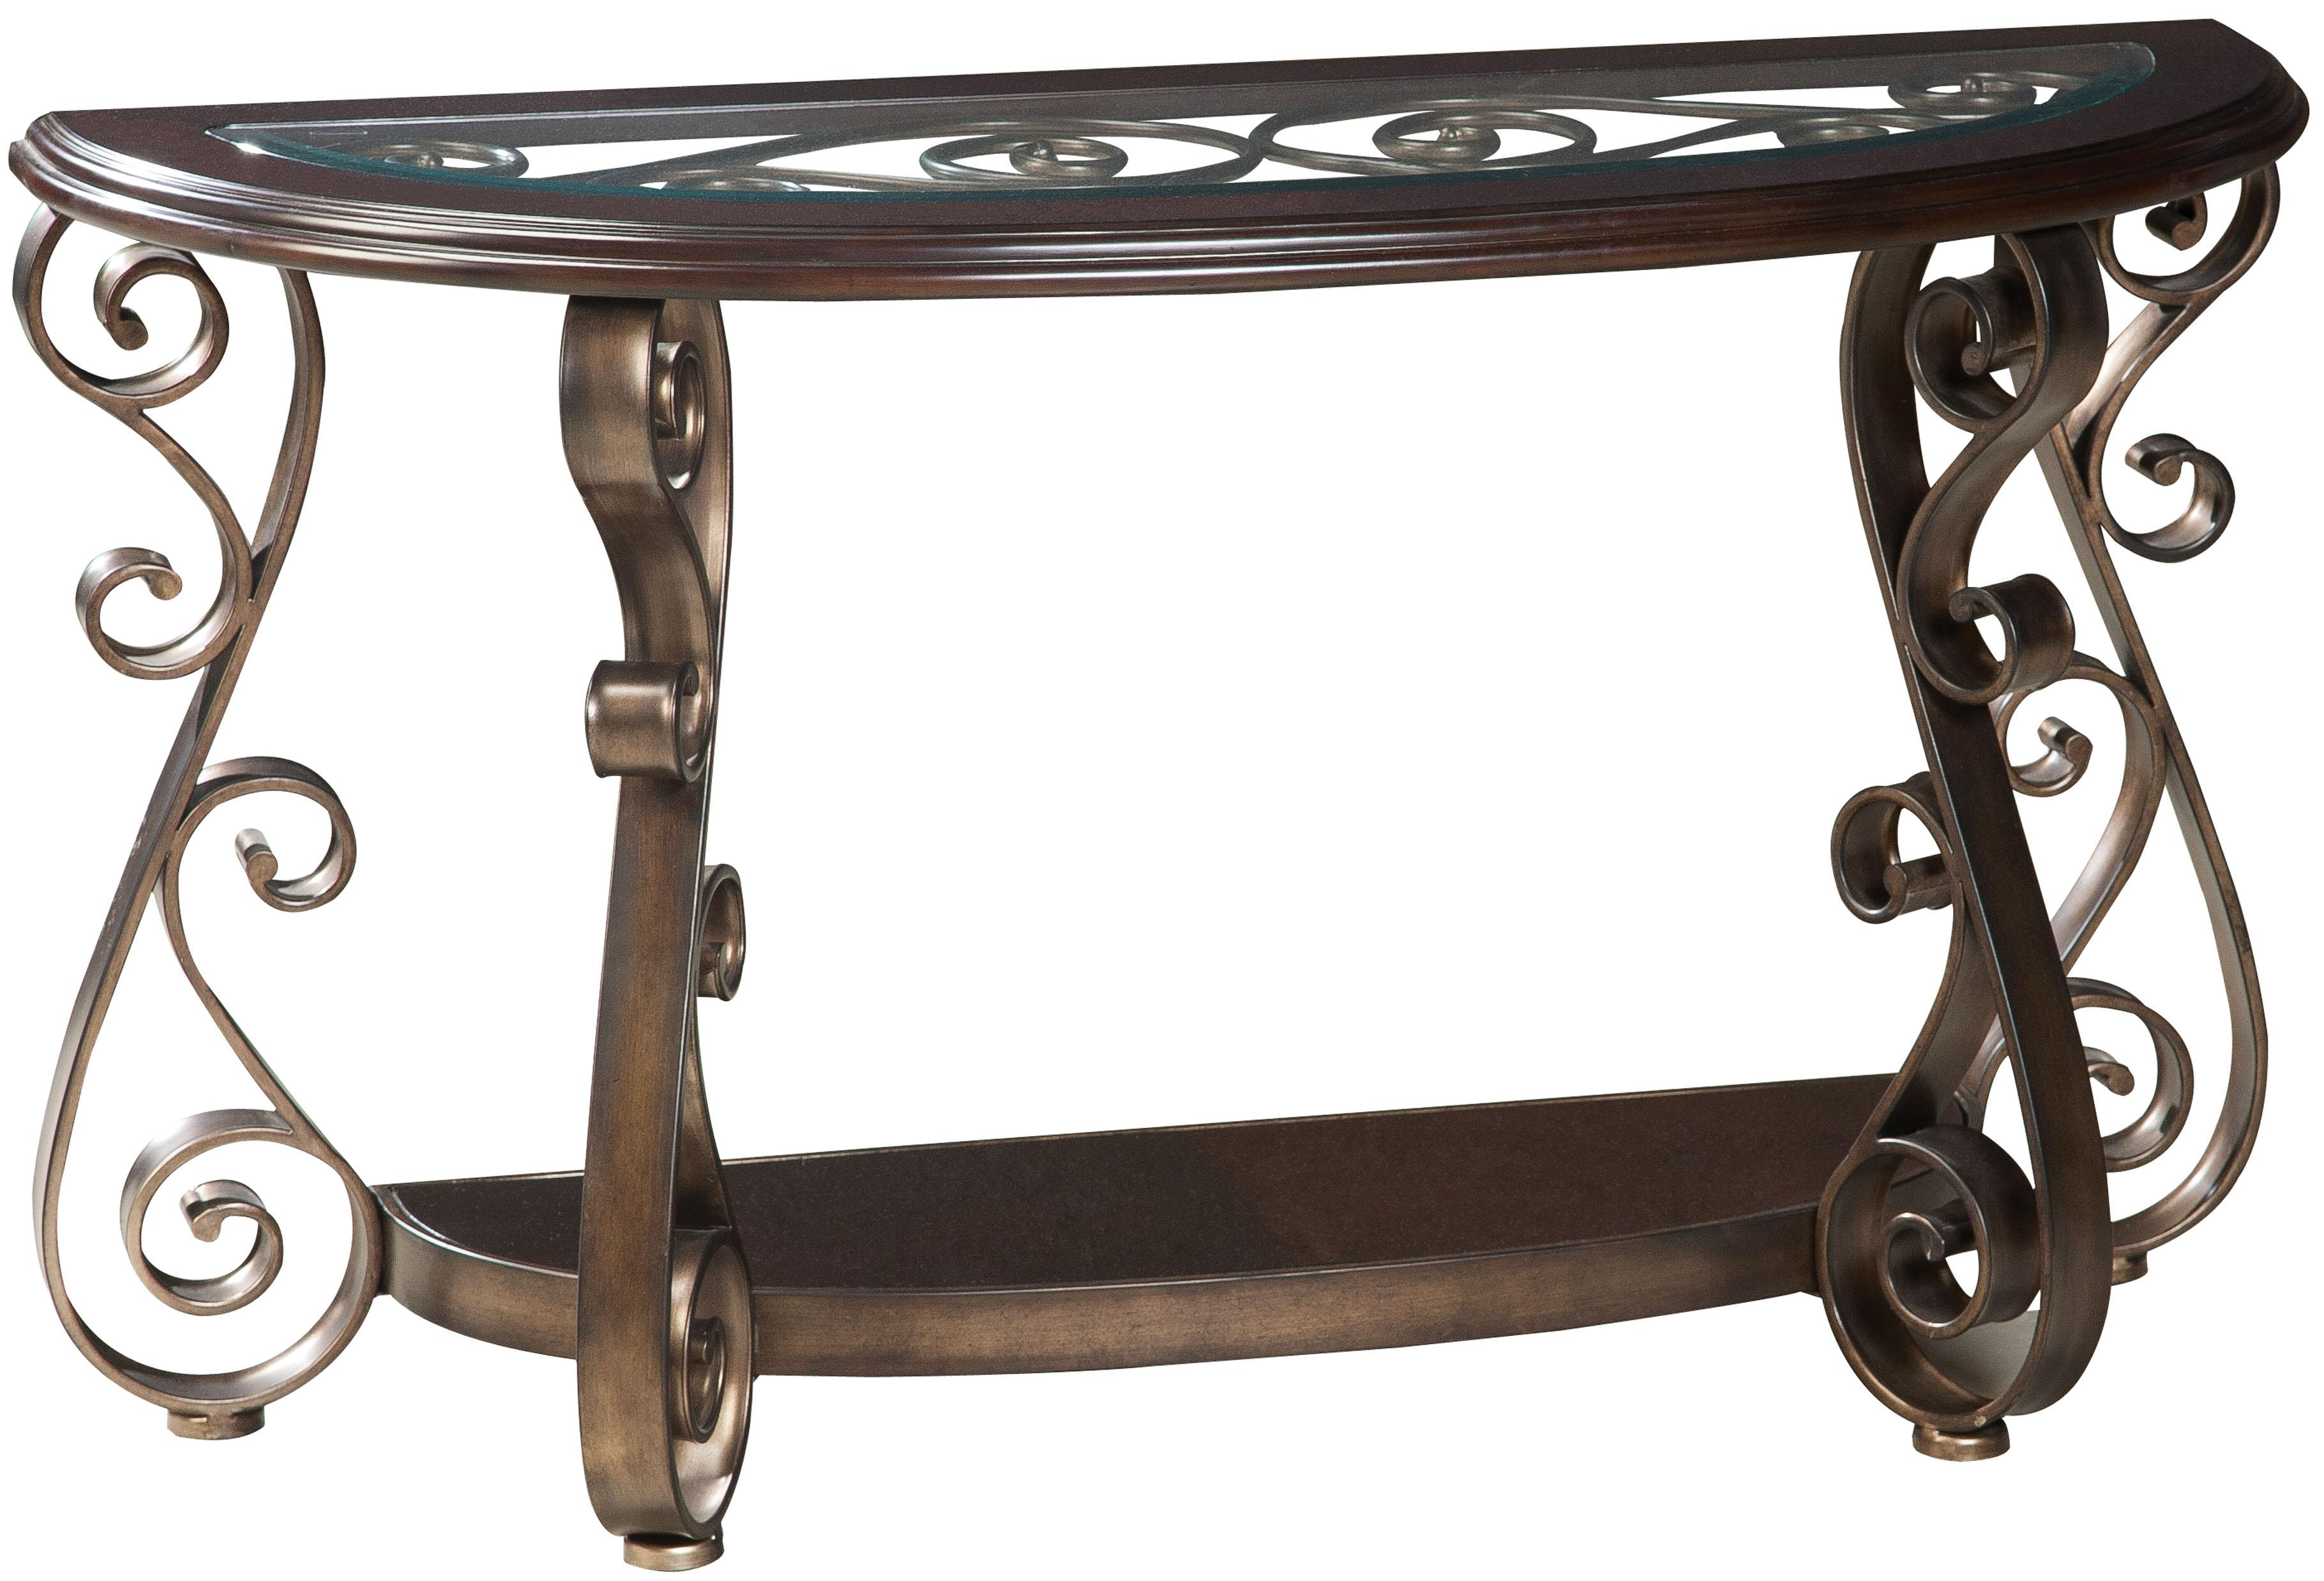 Standard Furniture Bombay Old World SofaTable - Item Number: 21607